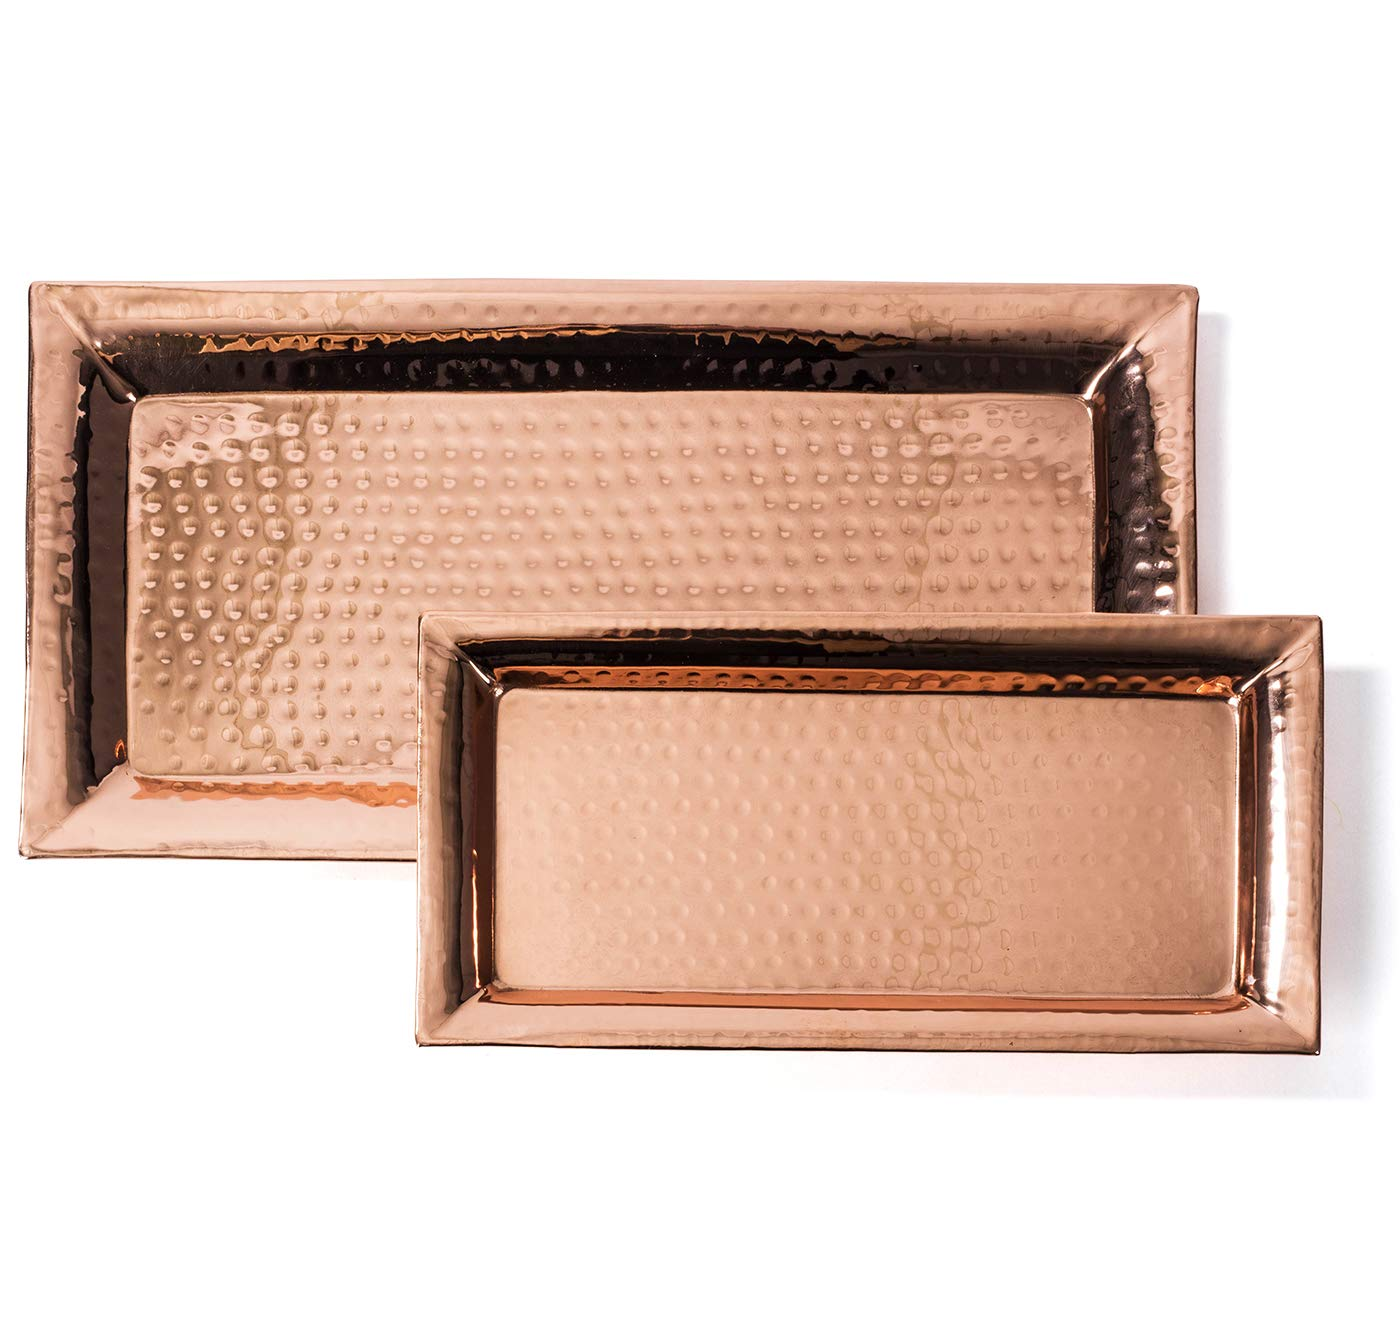 Colleta Home Hammered Tray – Set of 2, Serving Platter 16x8 Inch, Rectangular Serving Dish 12x6 Inch, Pure Copper, Stackable - Nesting Trays